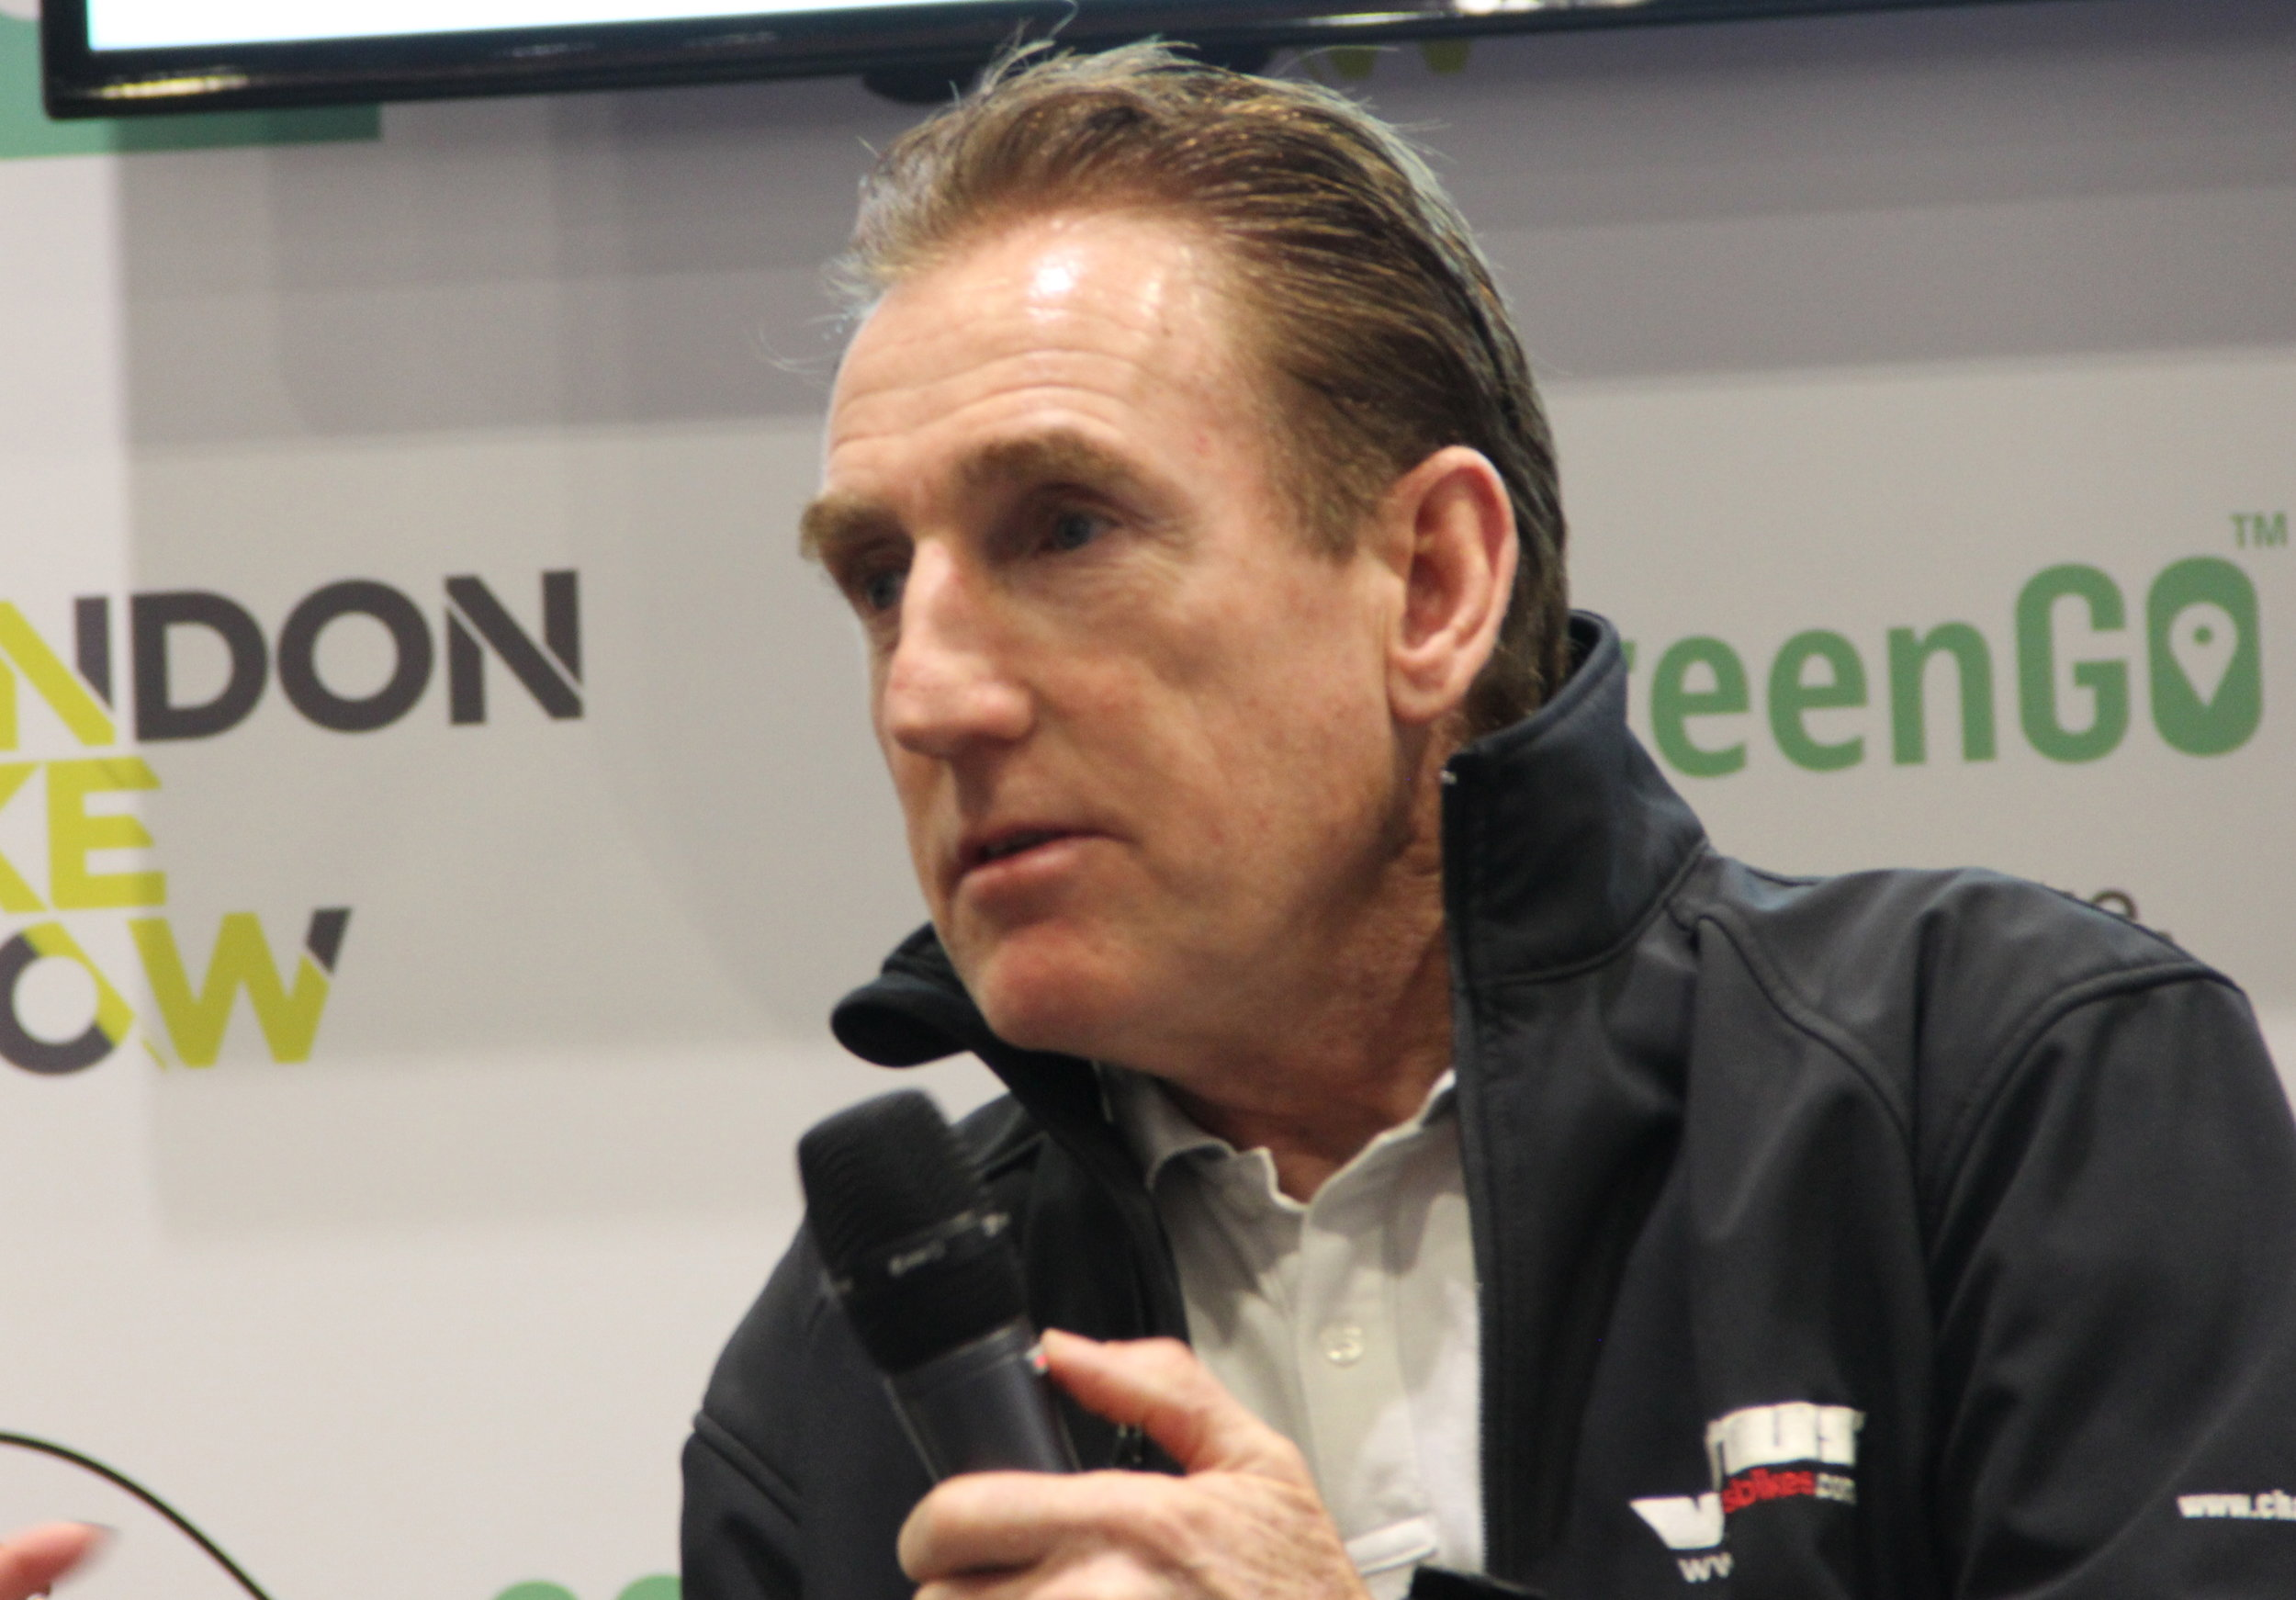 Sean Kelly at the London Bike Show